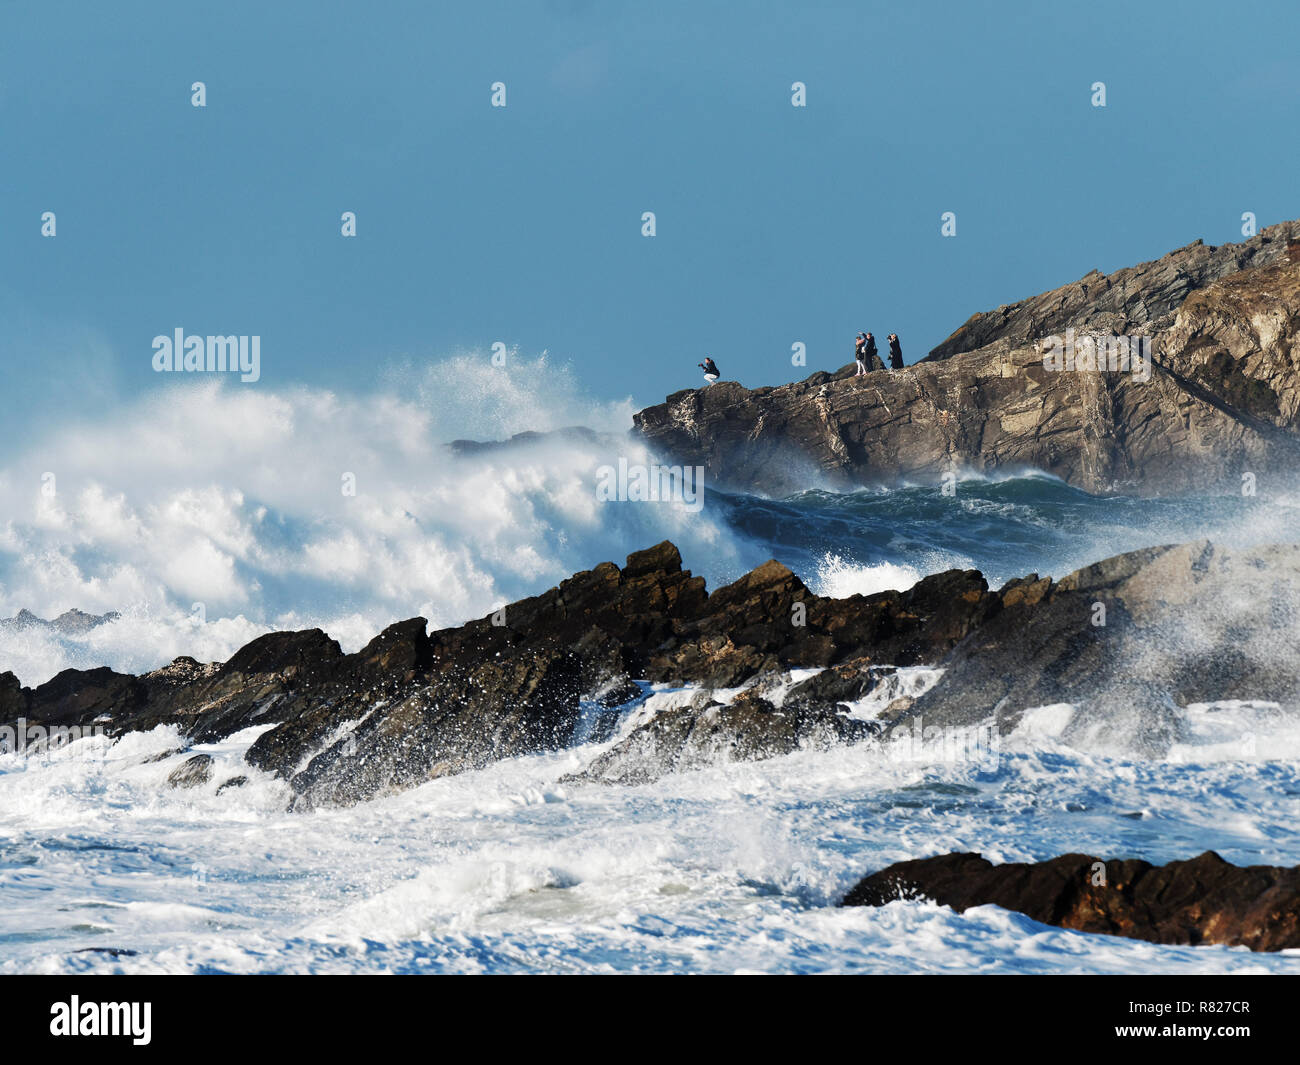 Danger family oblivious to dangerous wave conditions at the coast - Stock Image